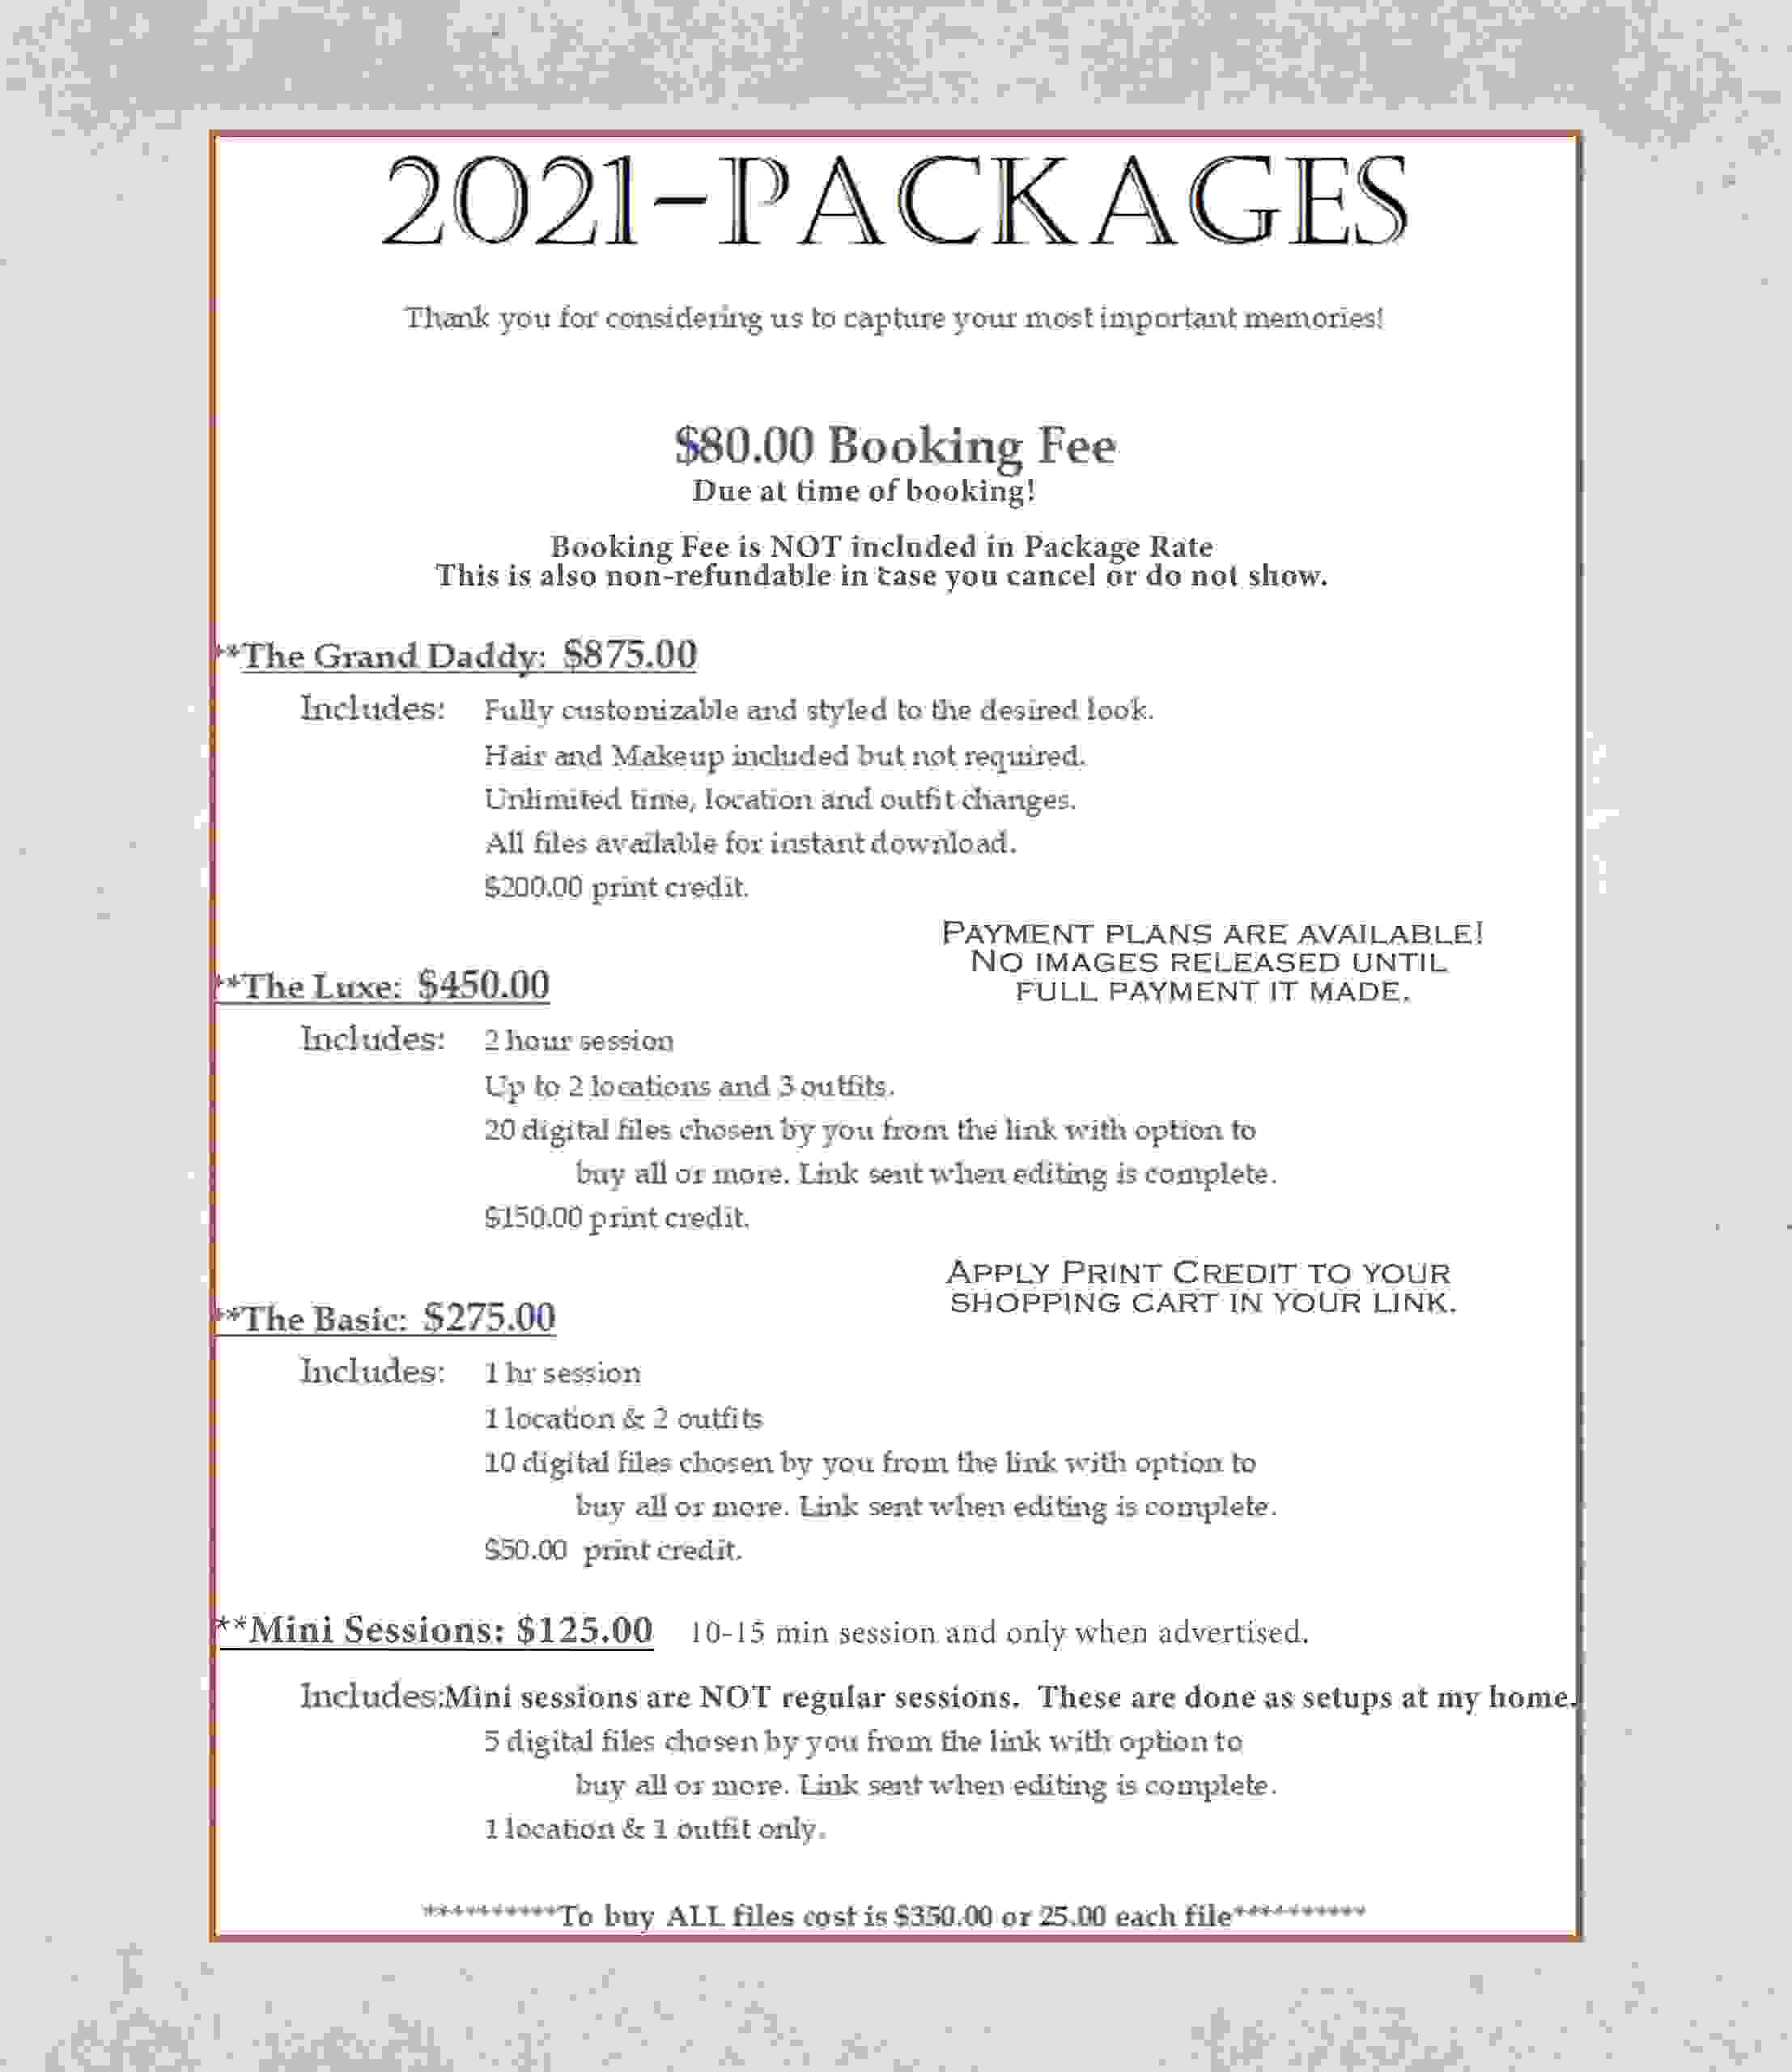 This Price sheet is geared towards Portrait Sessions only.